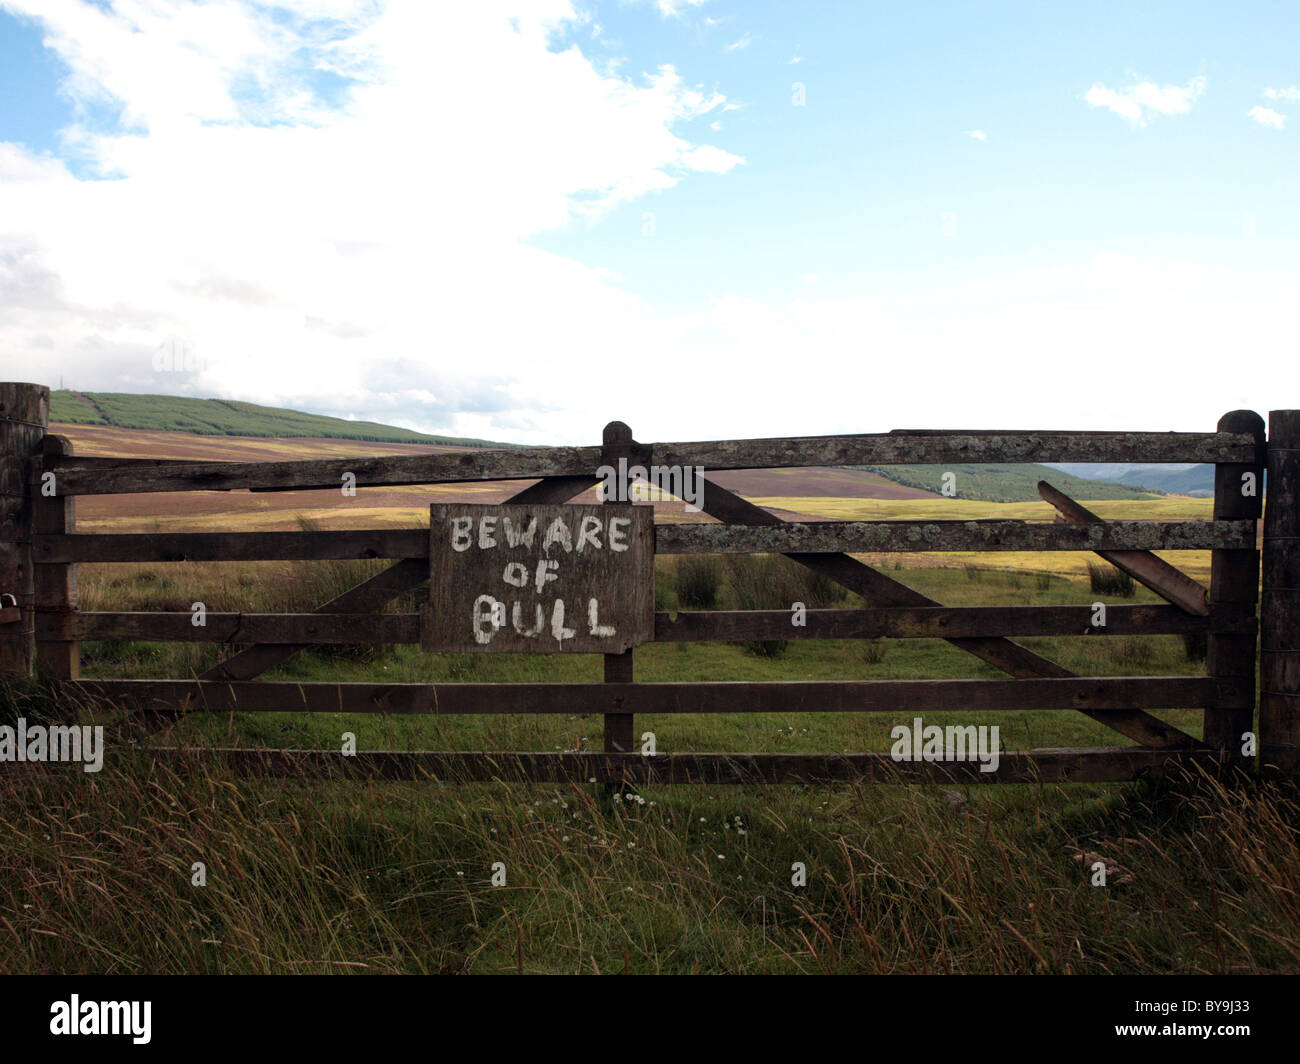 A sign on a fence that reads: Beware of Bull, honest is the best policy. - Stock Image